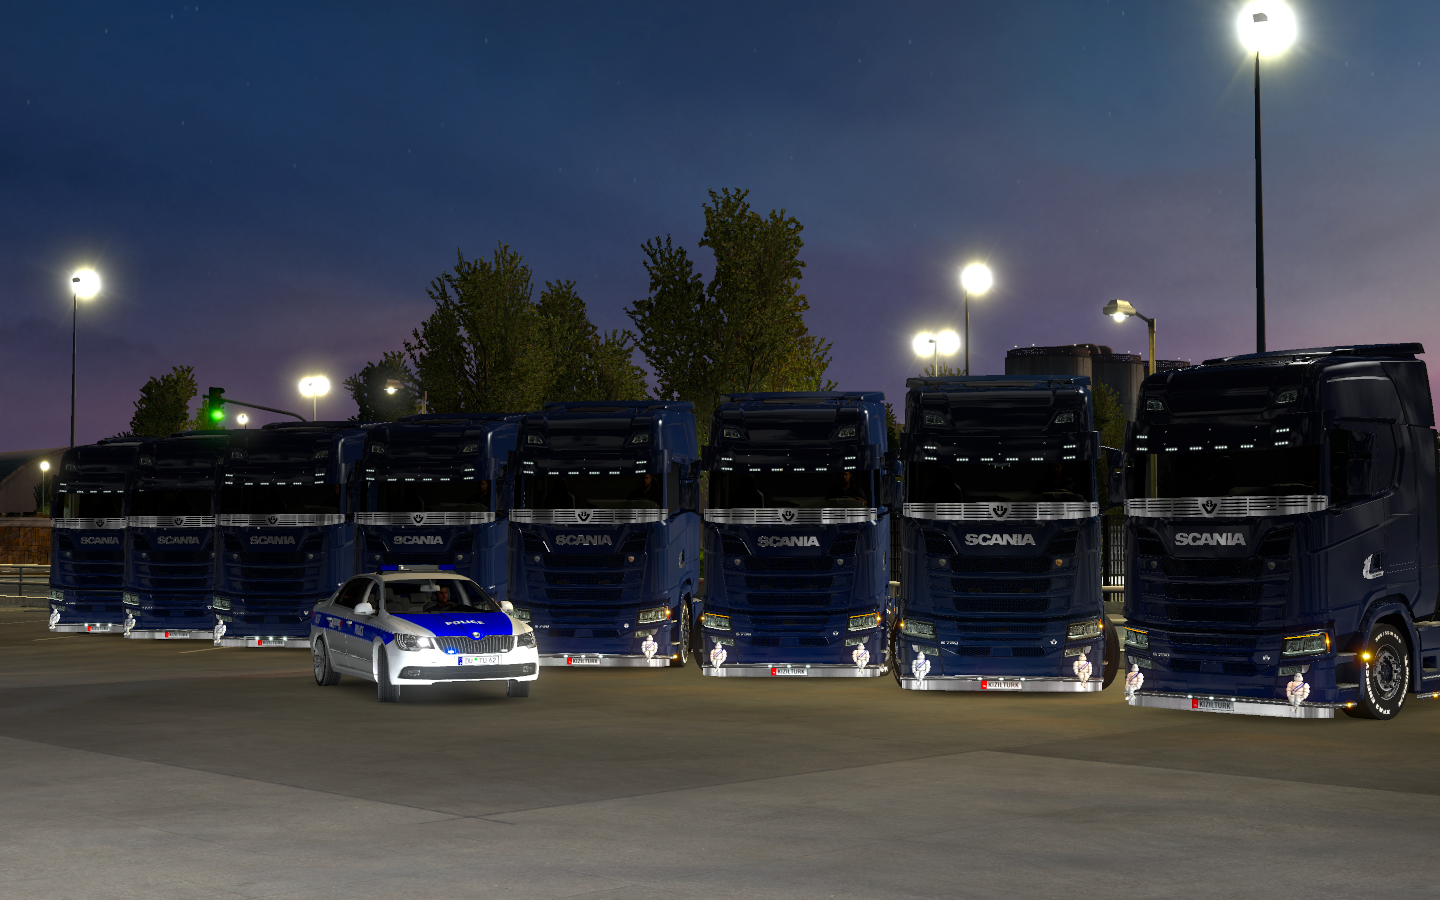 ets2_20190525_213810_00.png